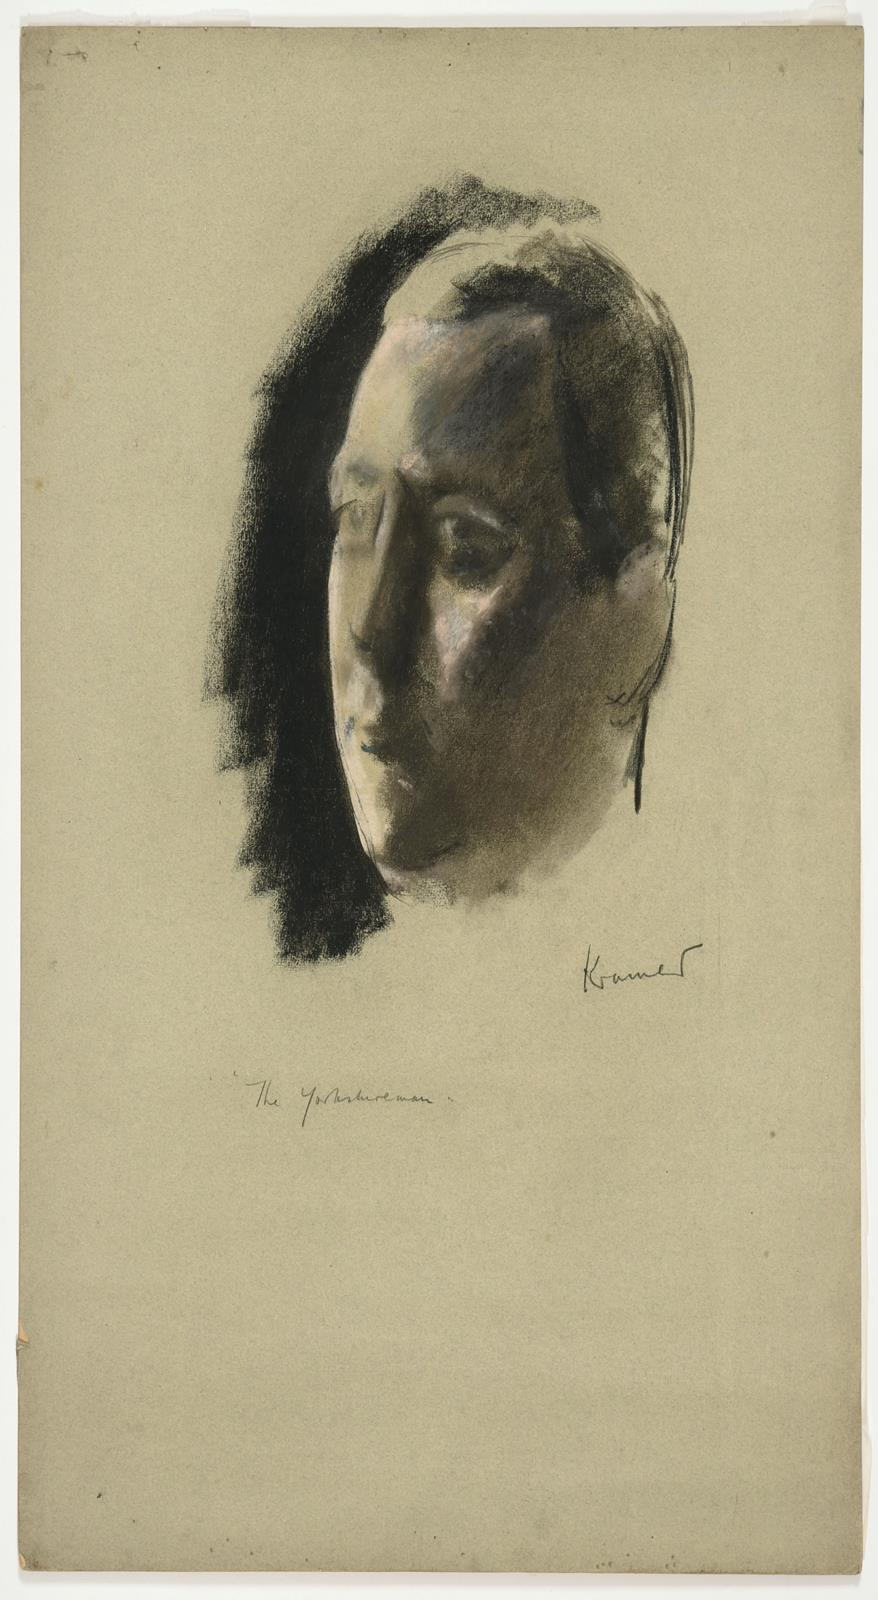 """Jacob Kramer (1892-1962) """"The Yorkshireman"""" Signed and inscribed, charcoal and chalk - Image 2 of 2"""